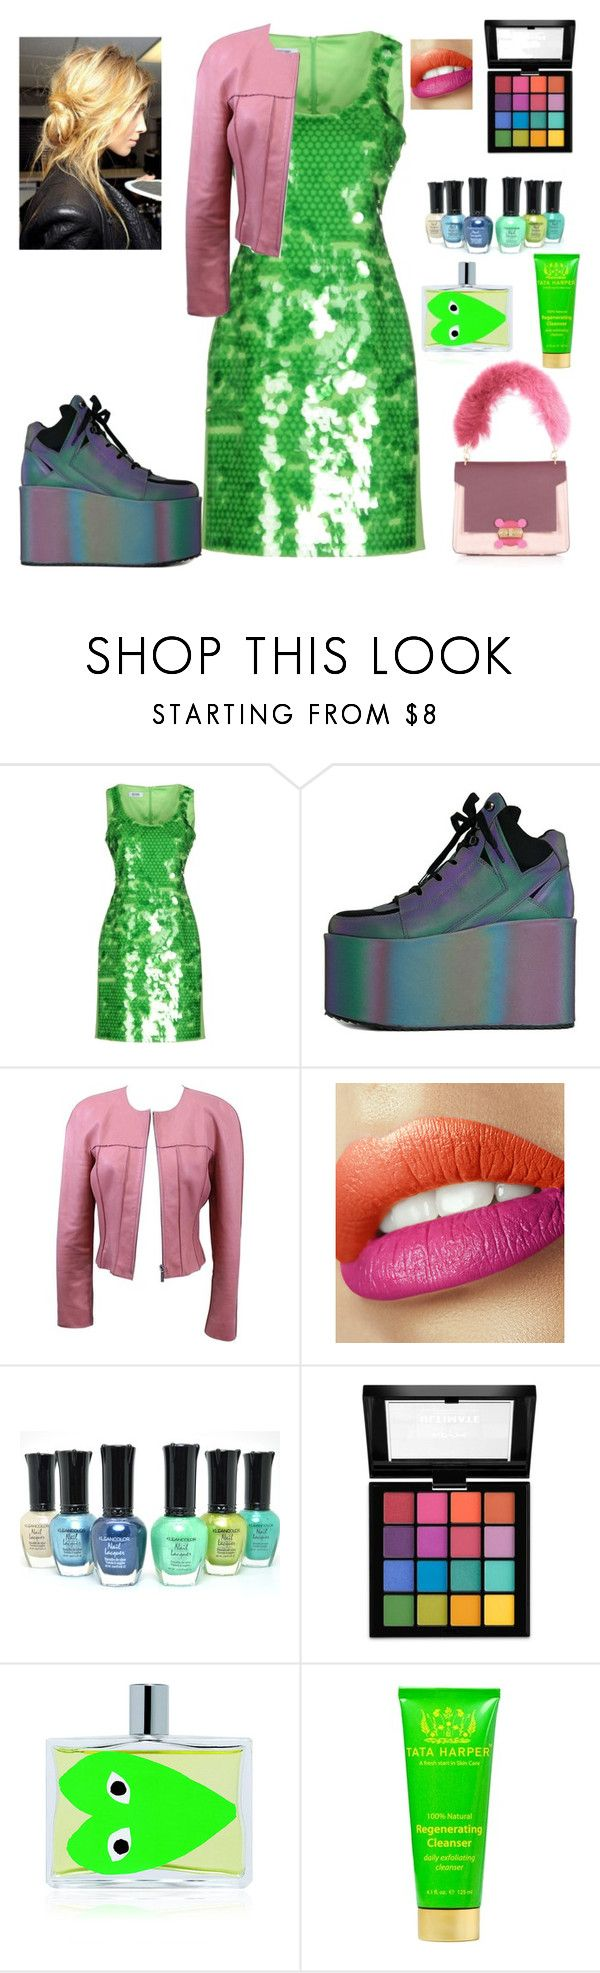 """""""I love this dress! (read D box)"""" by missbeth1897 ❤ liked on Polyvore featuring Moschino Cheap & Chic, Y.R.U., Chanel, NYX, Comme des Garçons, Tata Harper and Anya Hindmarch"""